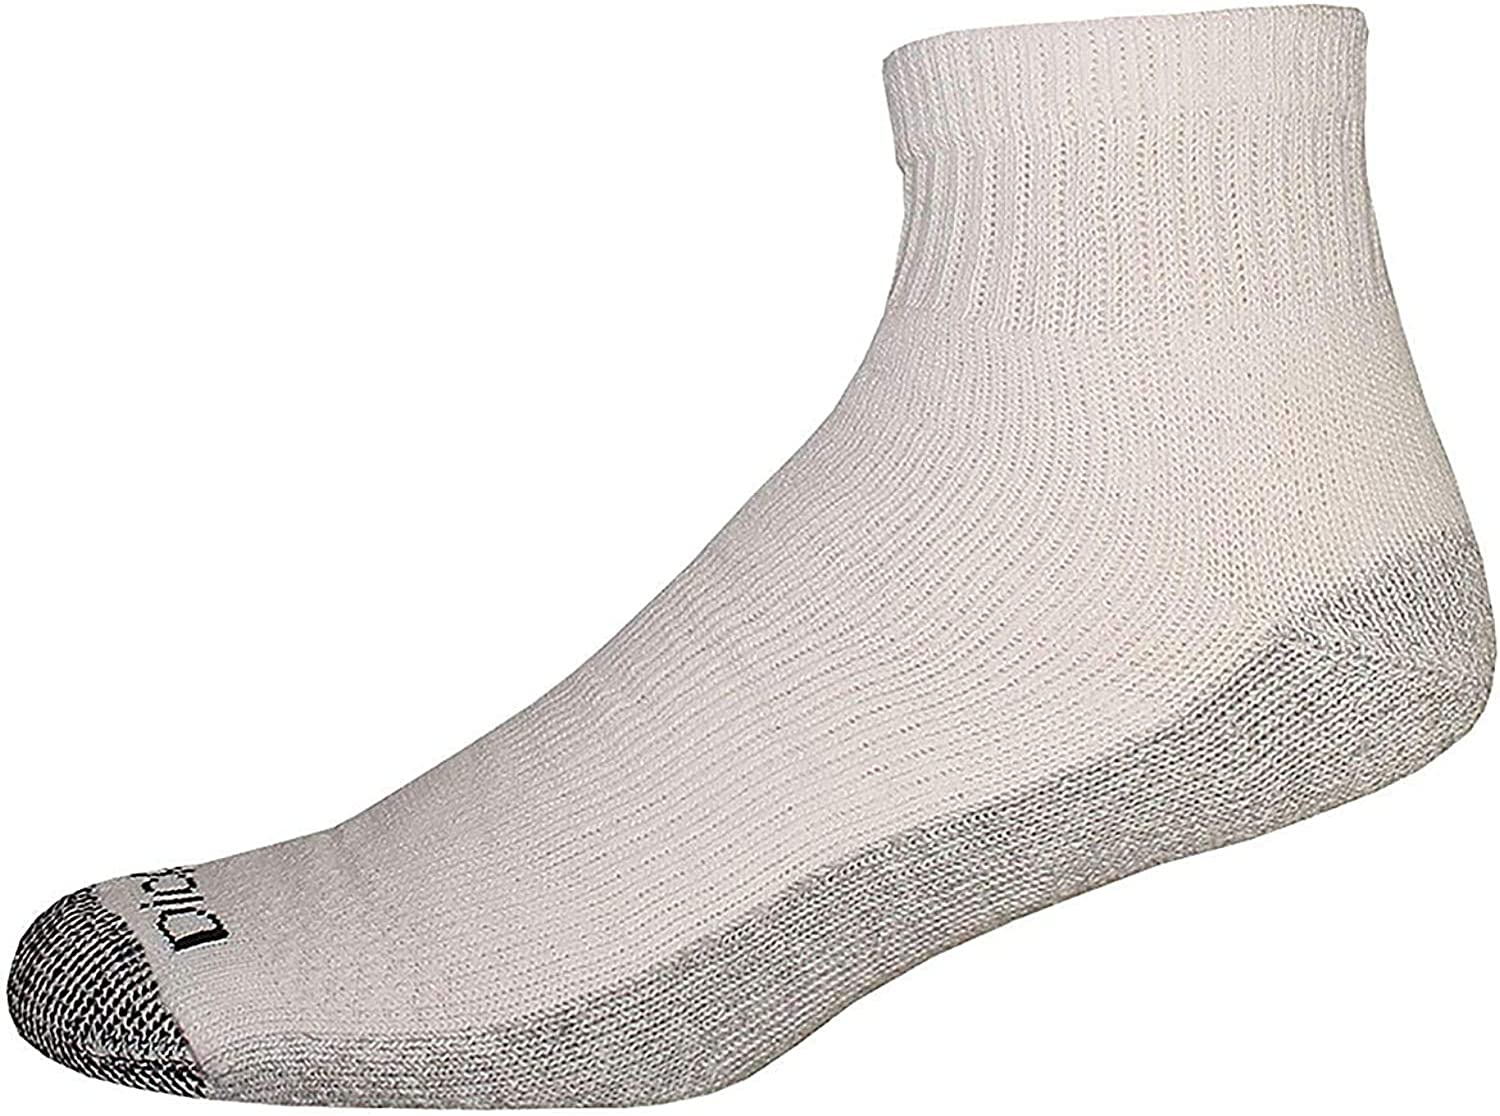 Details about  /Rugged White//Black Ankle Socks 3 Pair Kids Size 6-8 1//2 Made In The USA!!